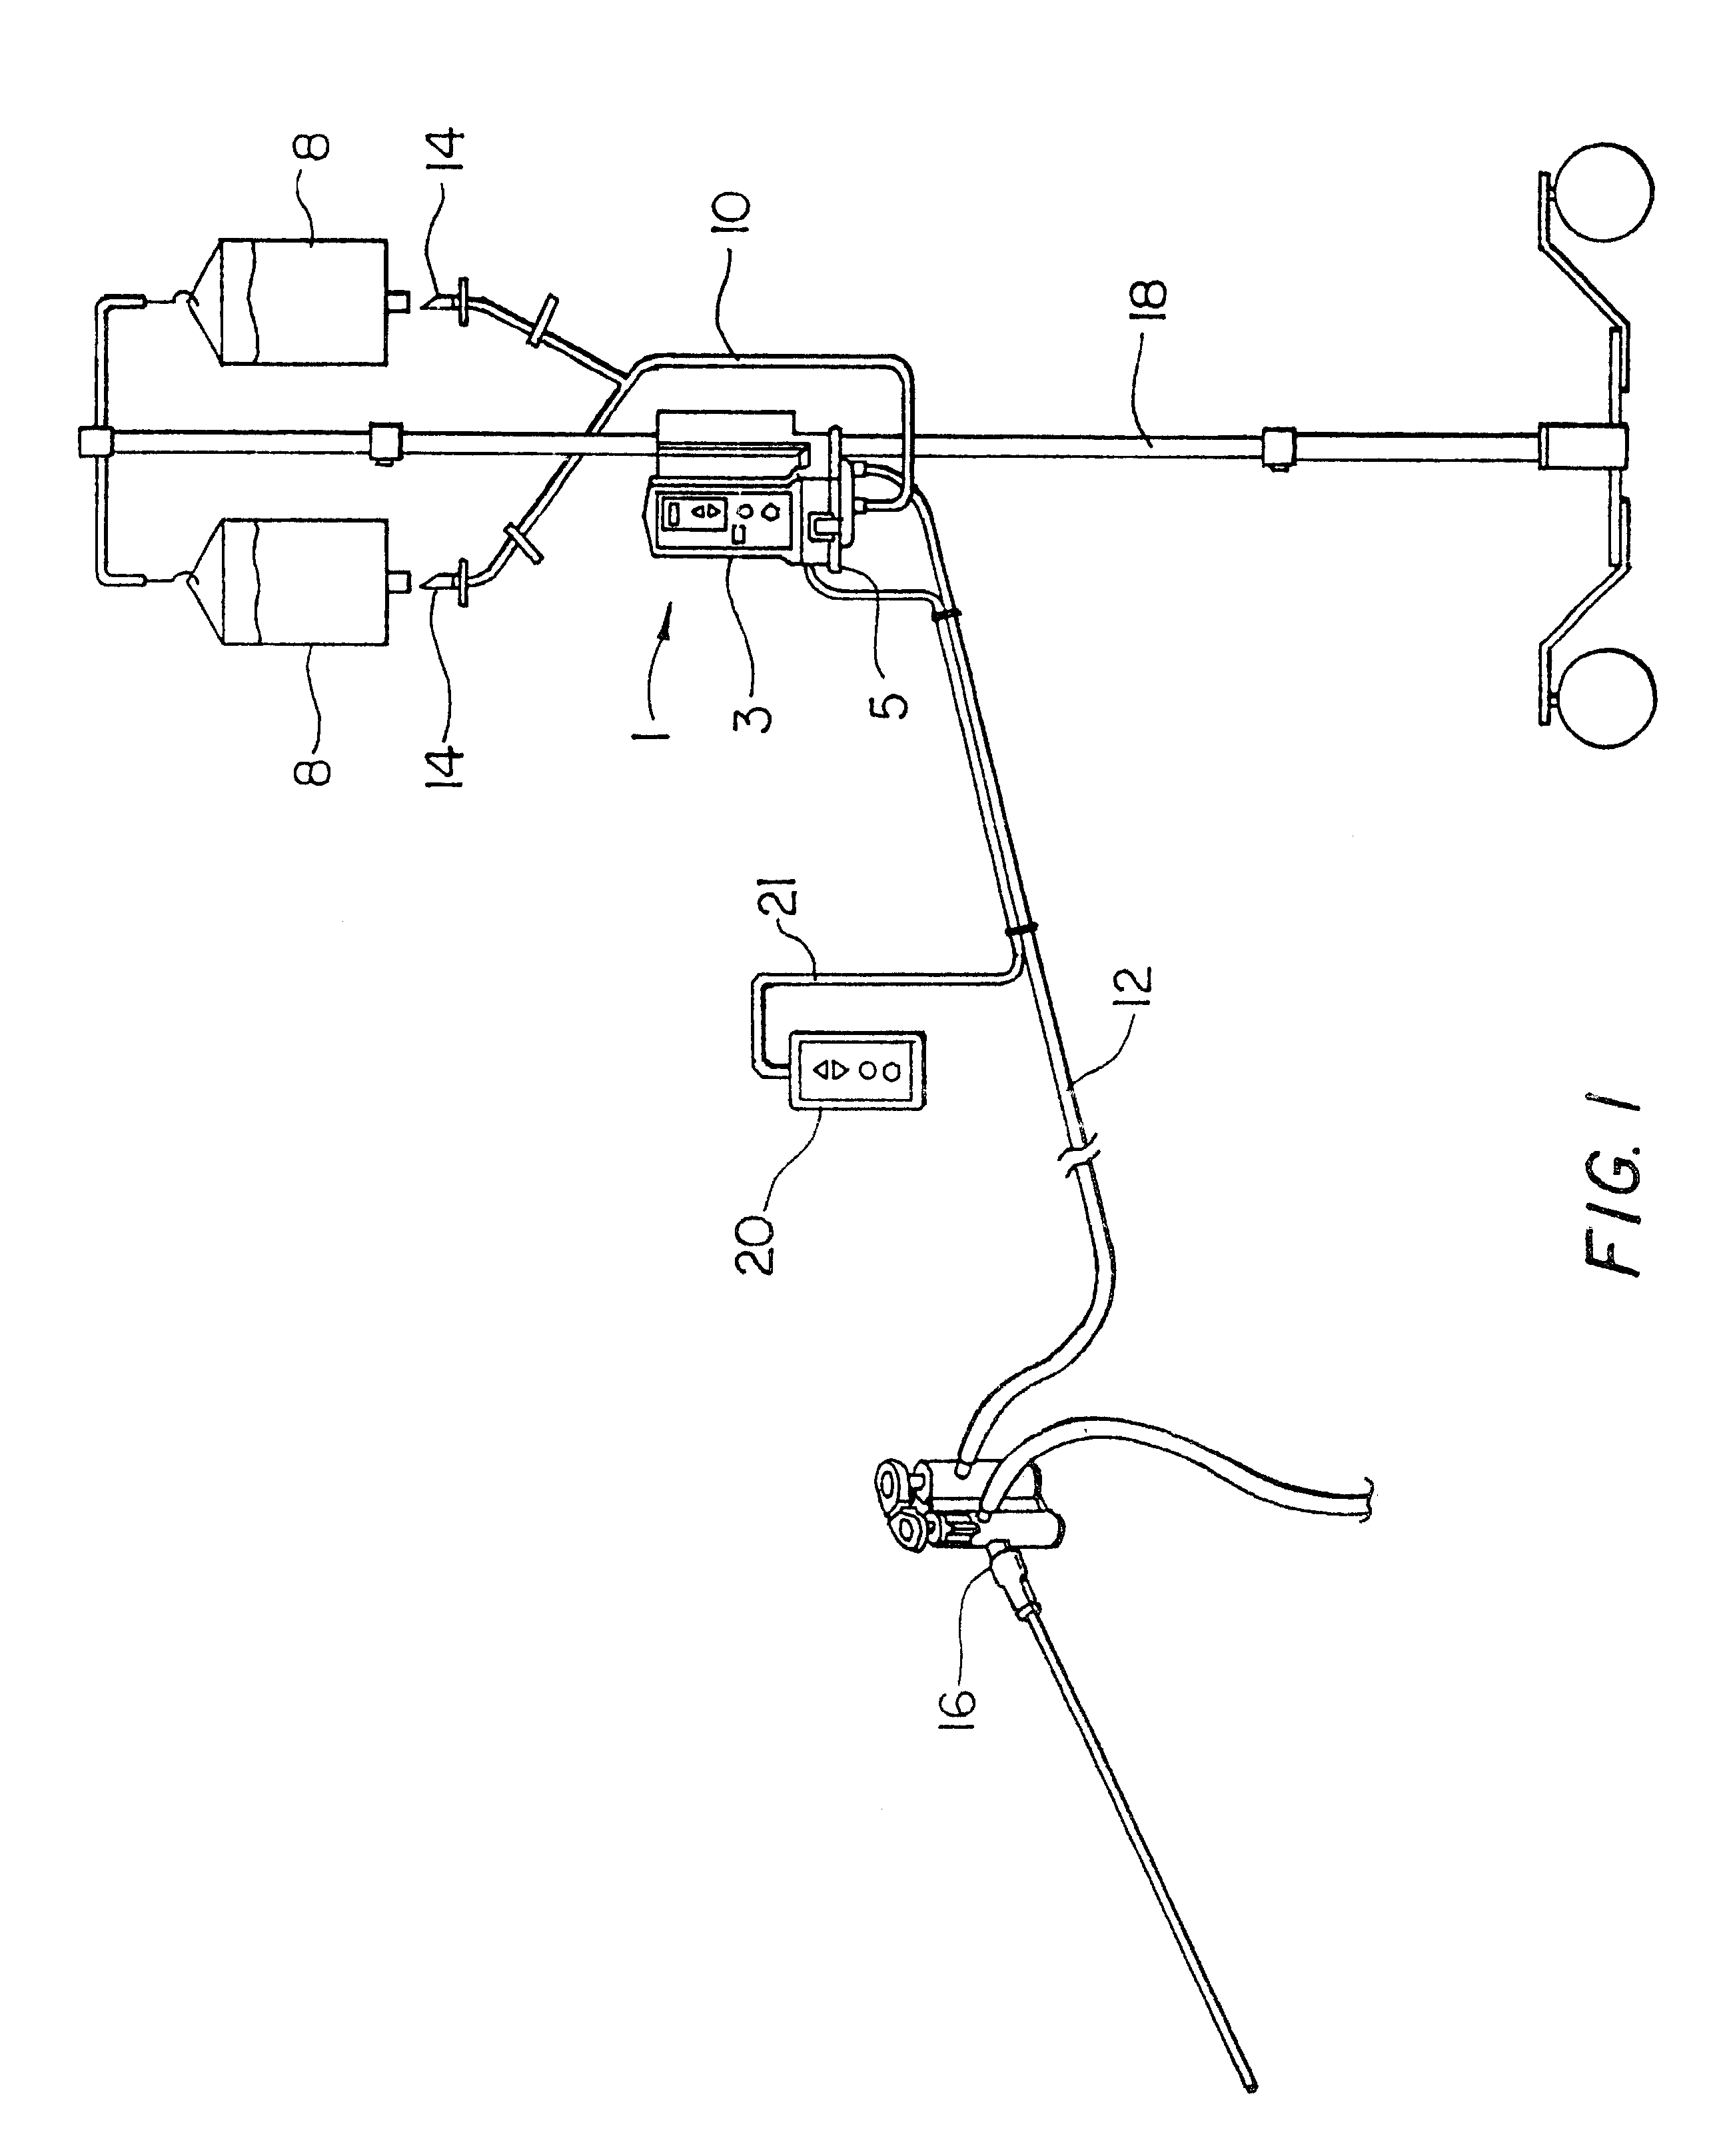 patent us6436072 medical irrigation pump and system